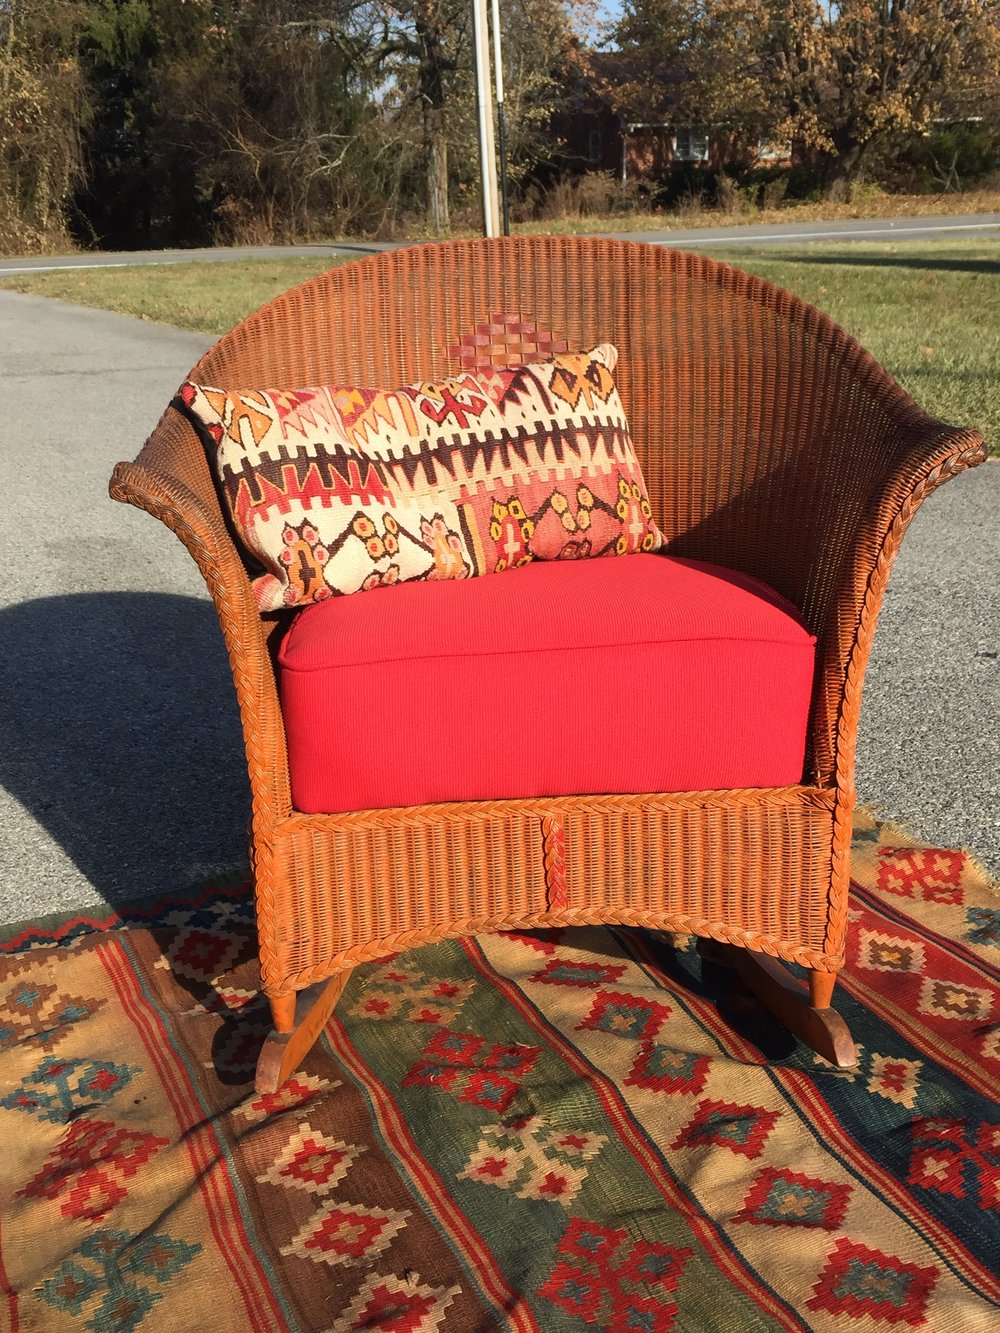 The perfect piece for a covered porch or sun room! Eclectic and Boho lovers will style it up with a Kantha or Kilim!